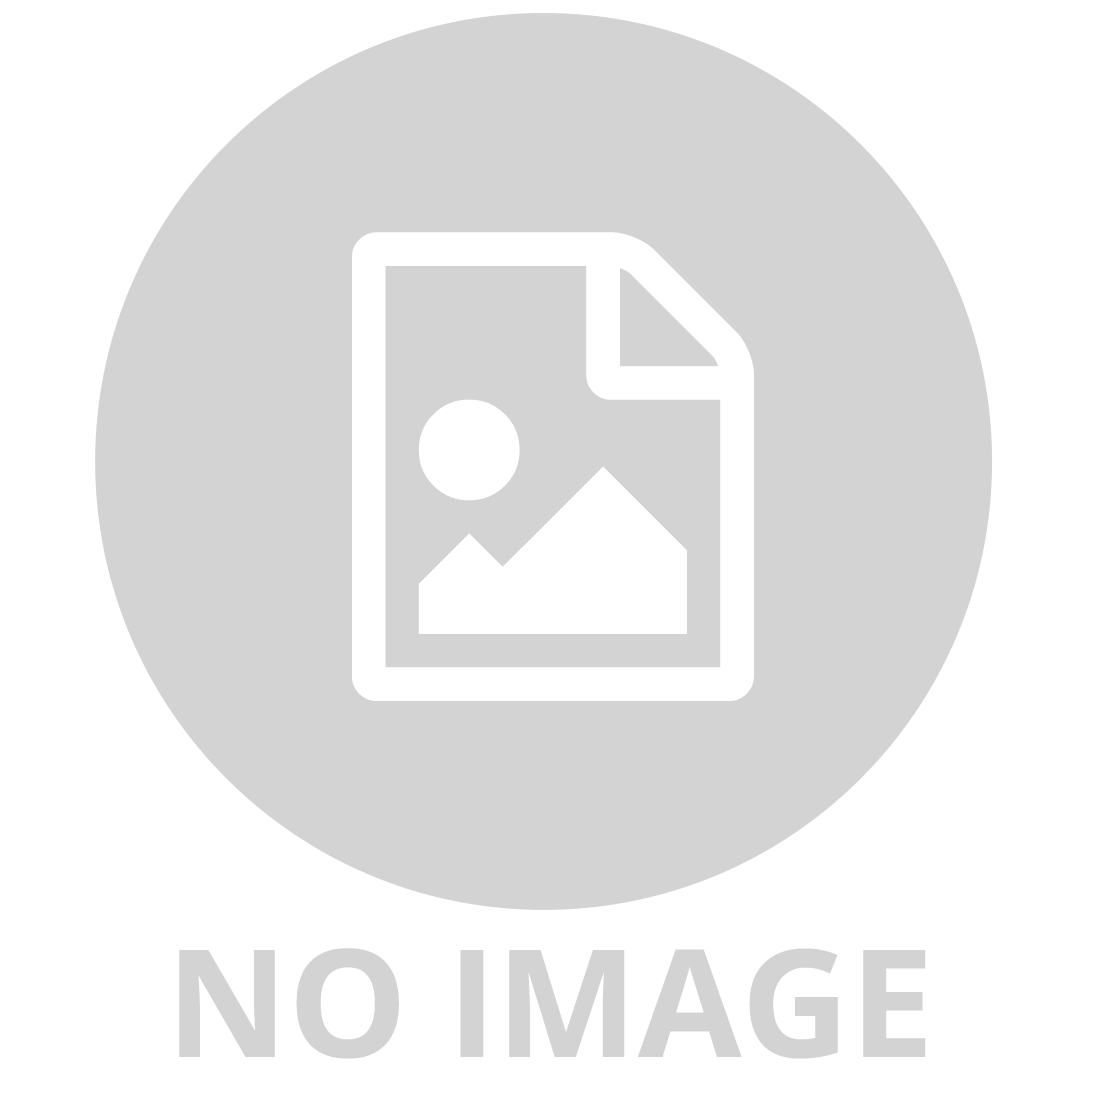 ***Audrey Pewter Wall Light